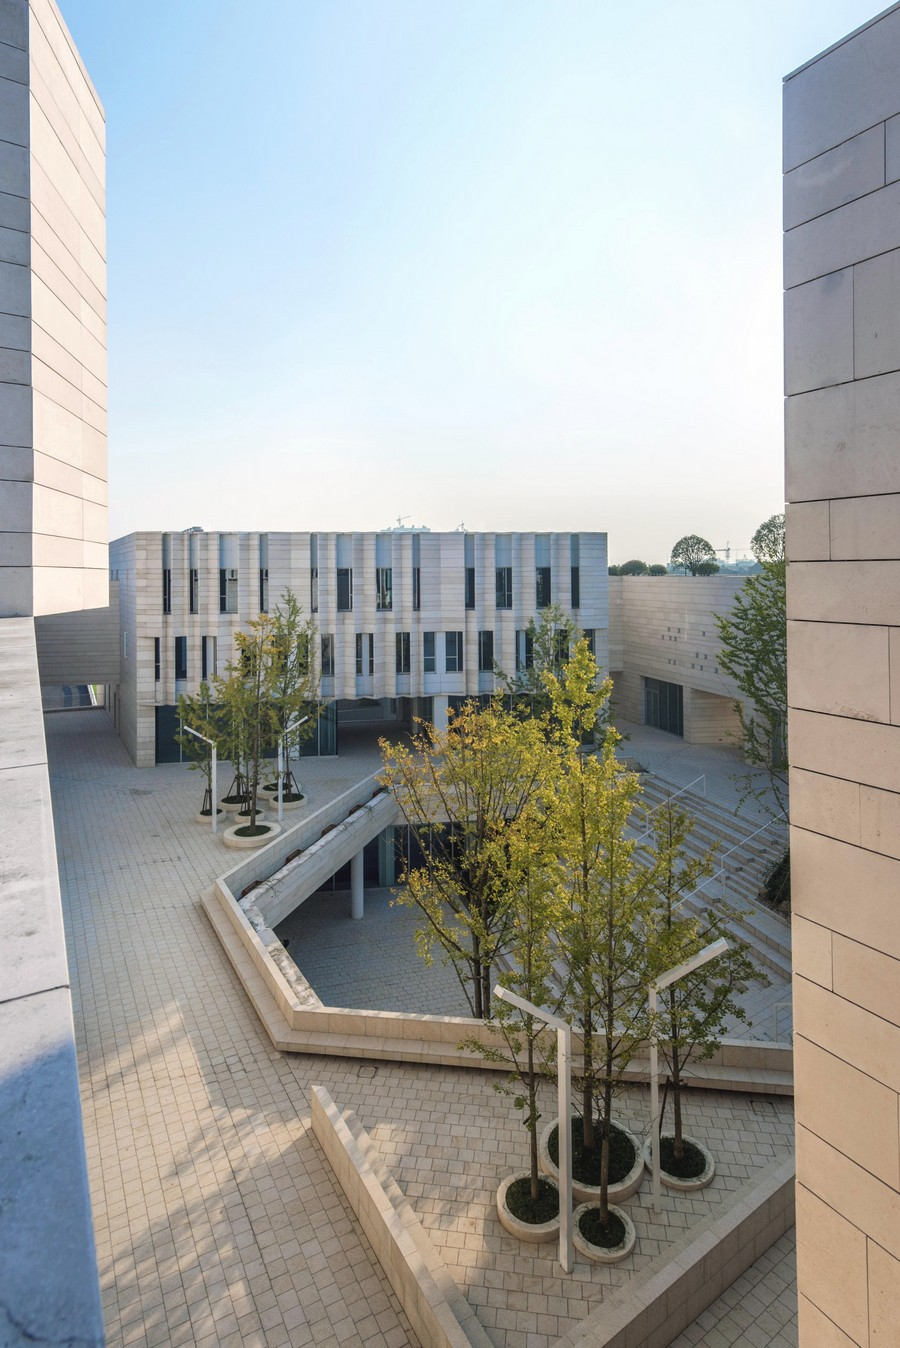 2-3-public-centre-in-Jiaxing-China-AIM-Architecture-exterior-creative-modern-architecture